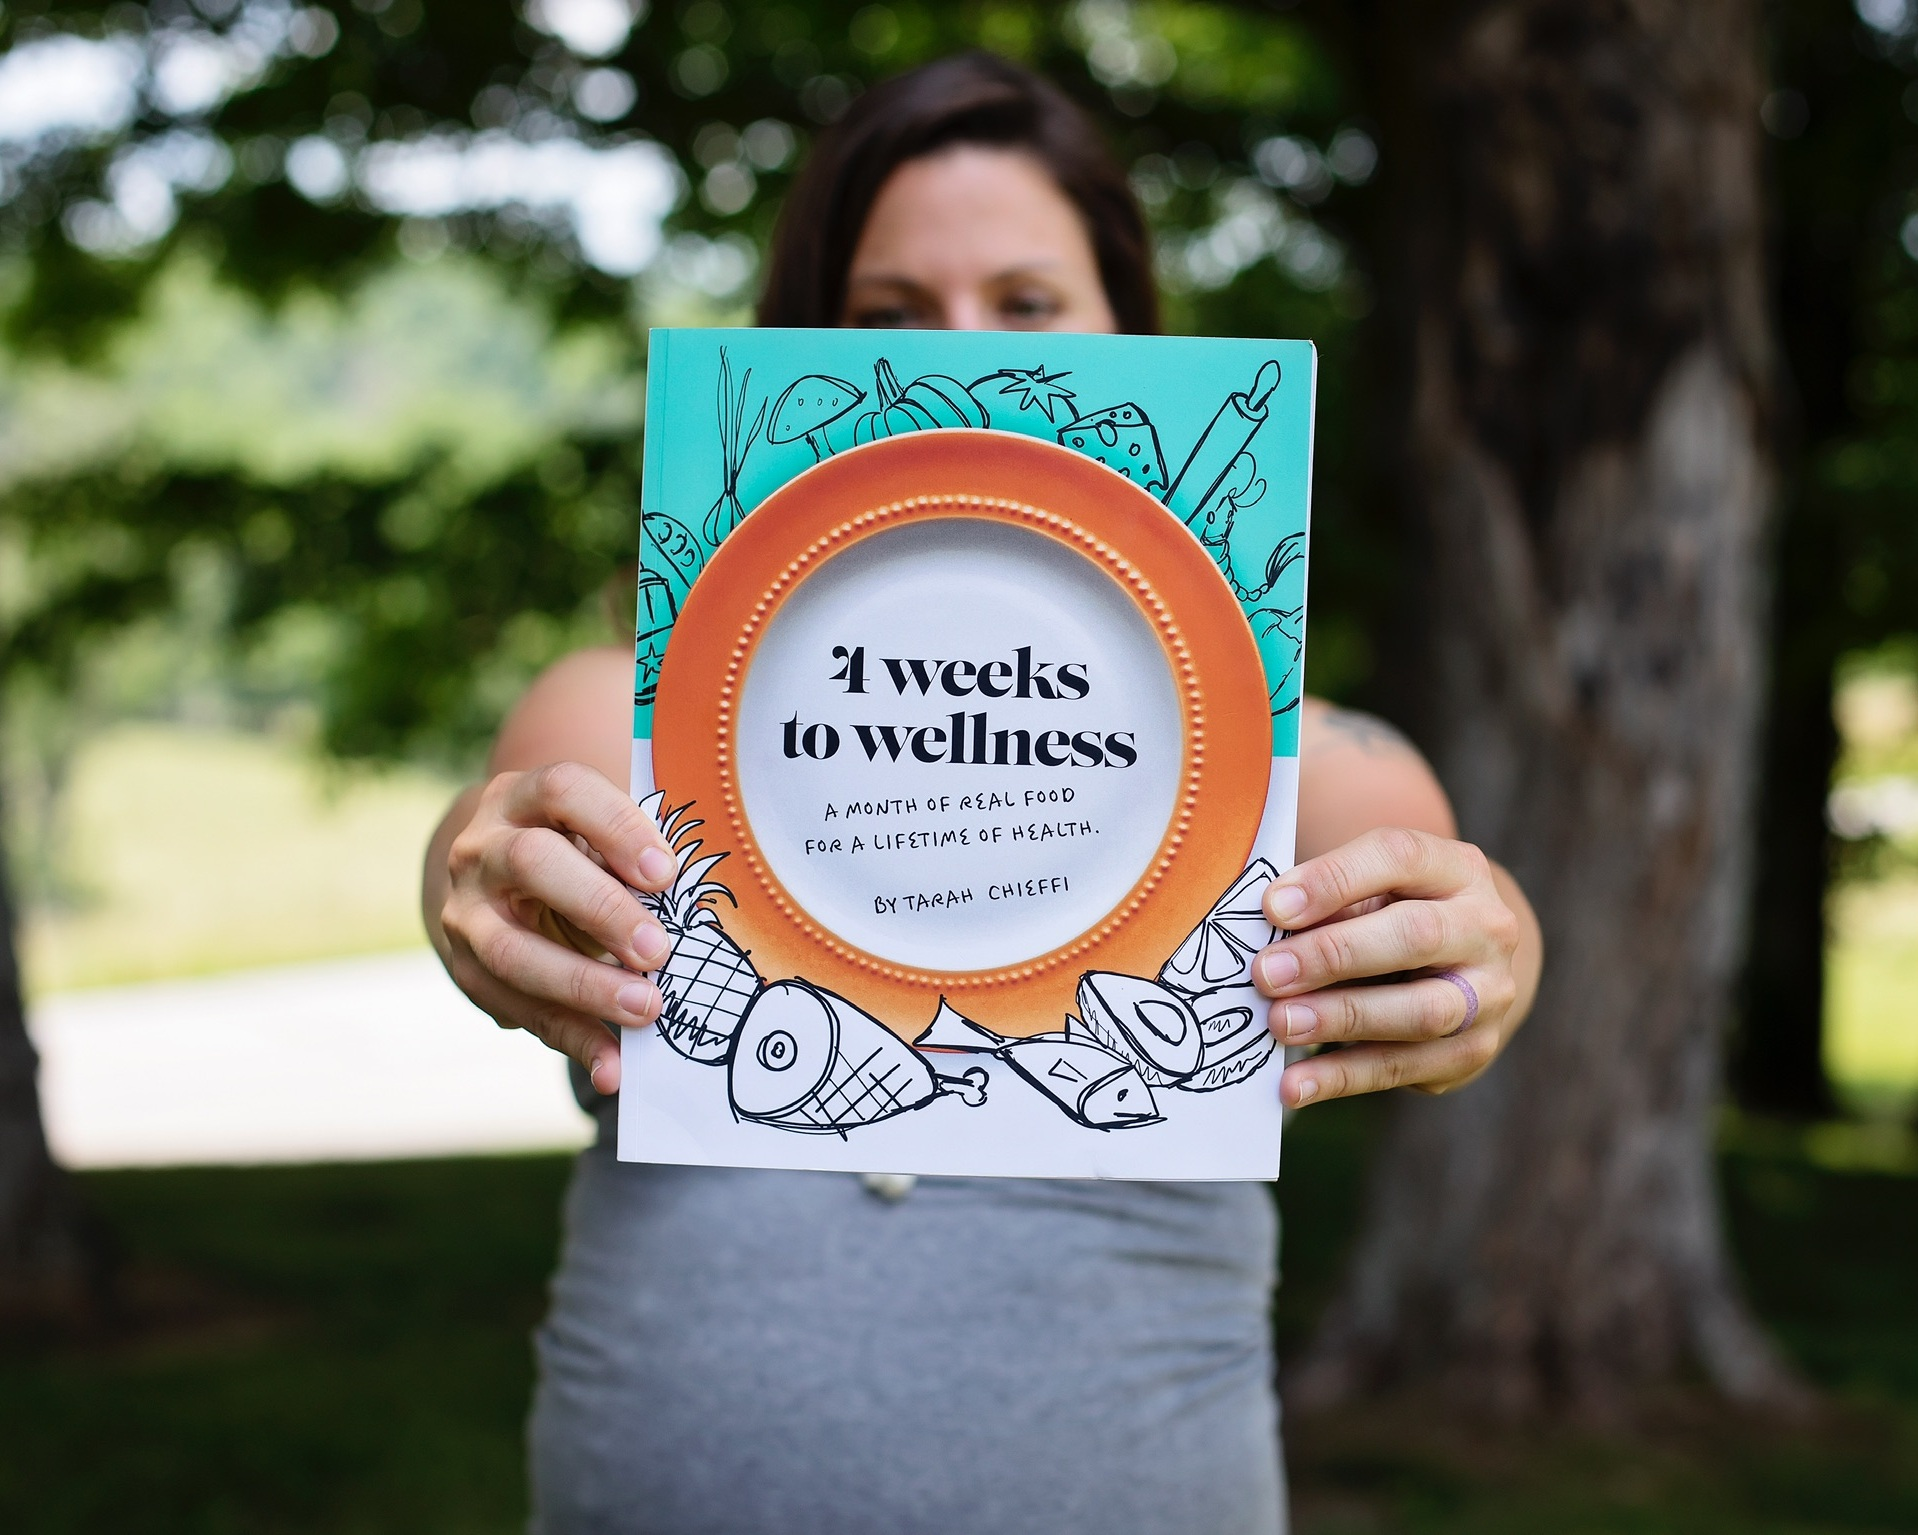 4 Weeks to Wellness Book